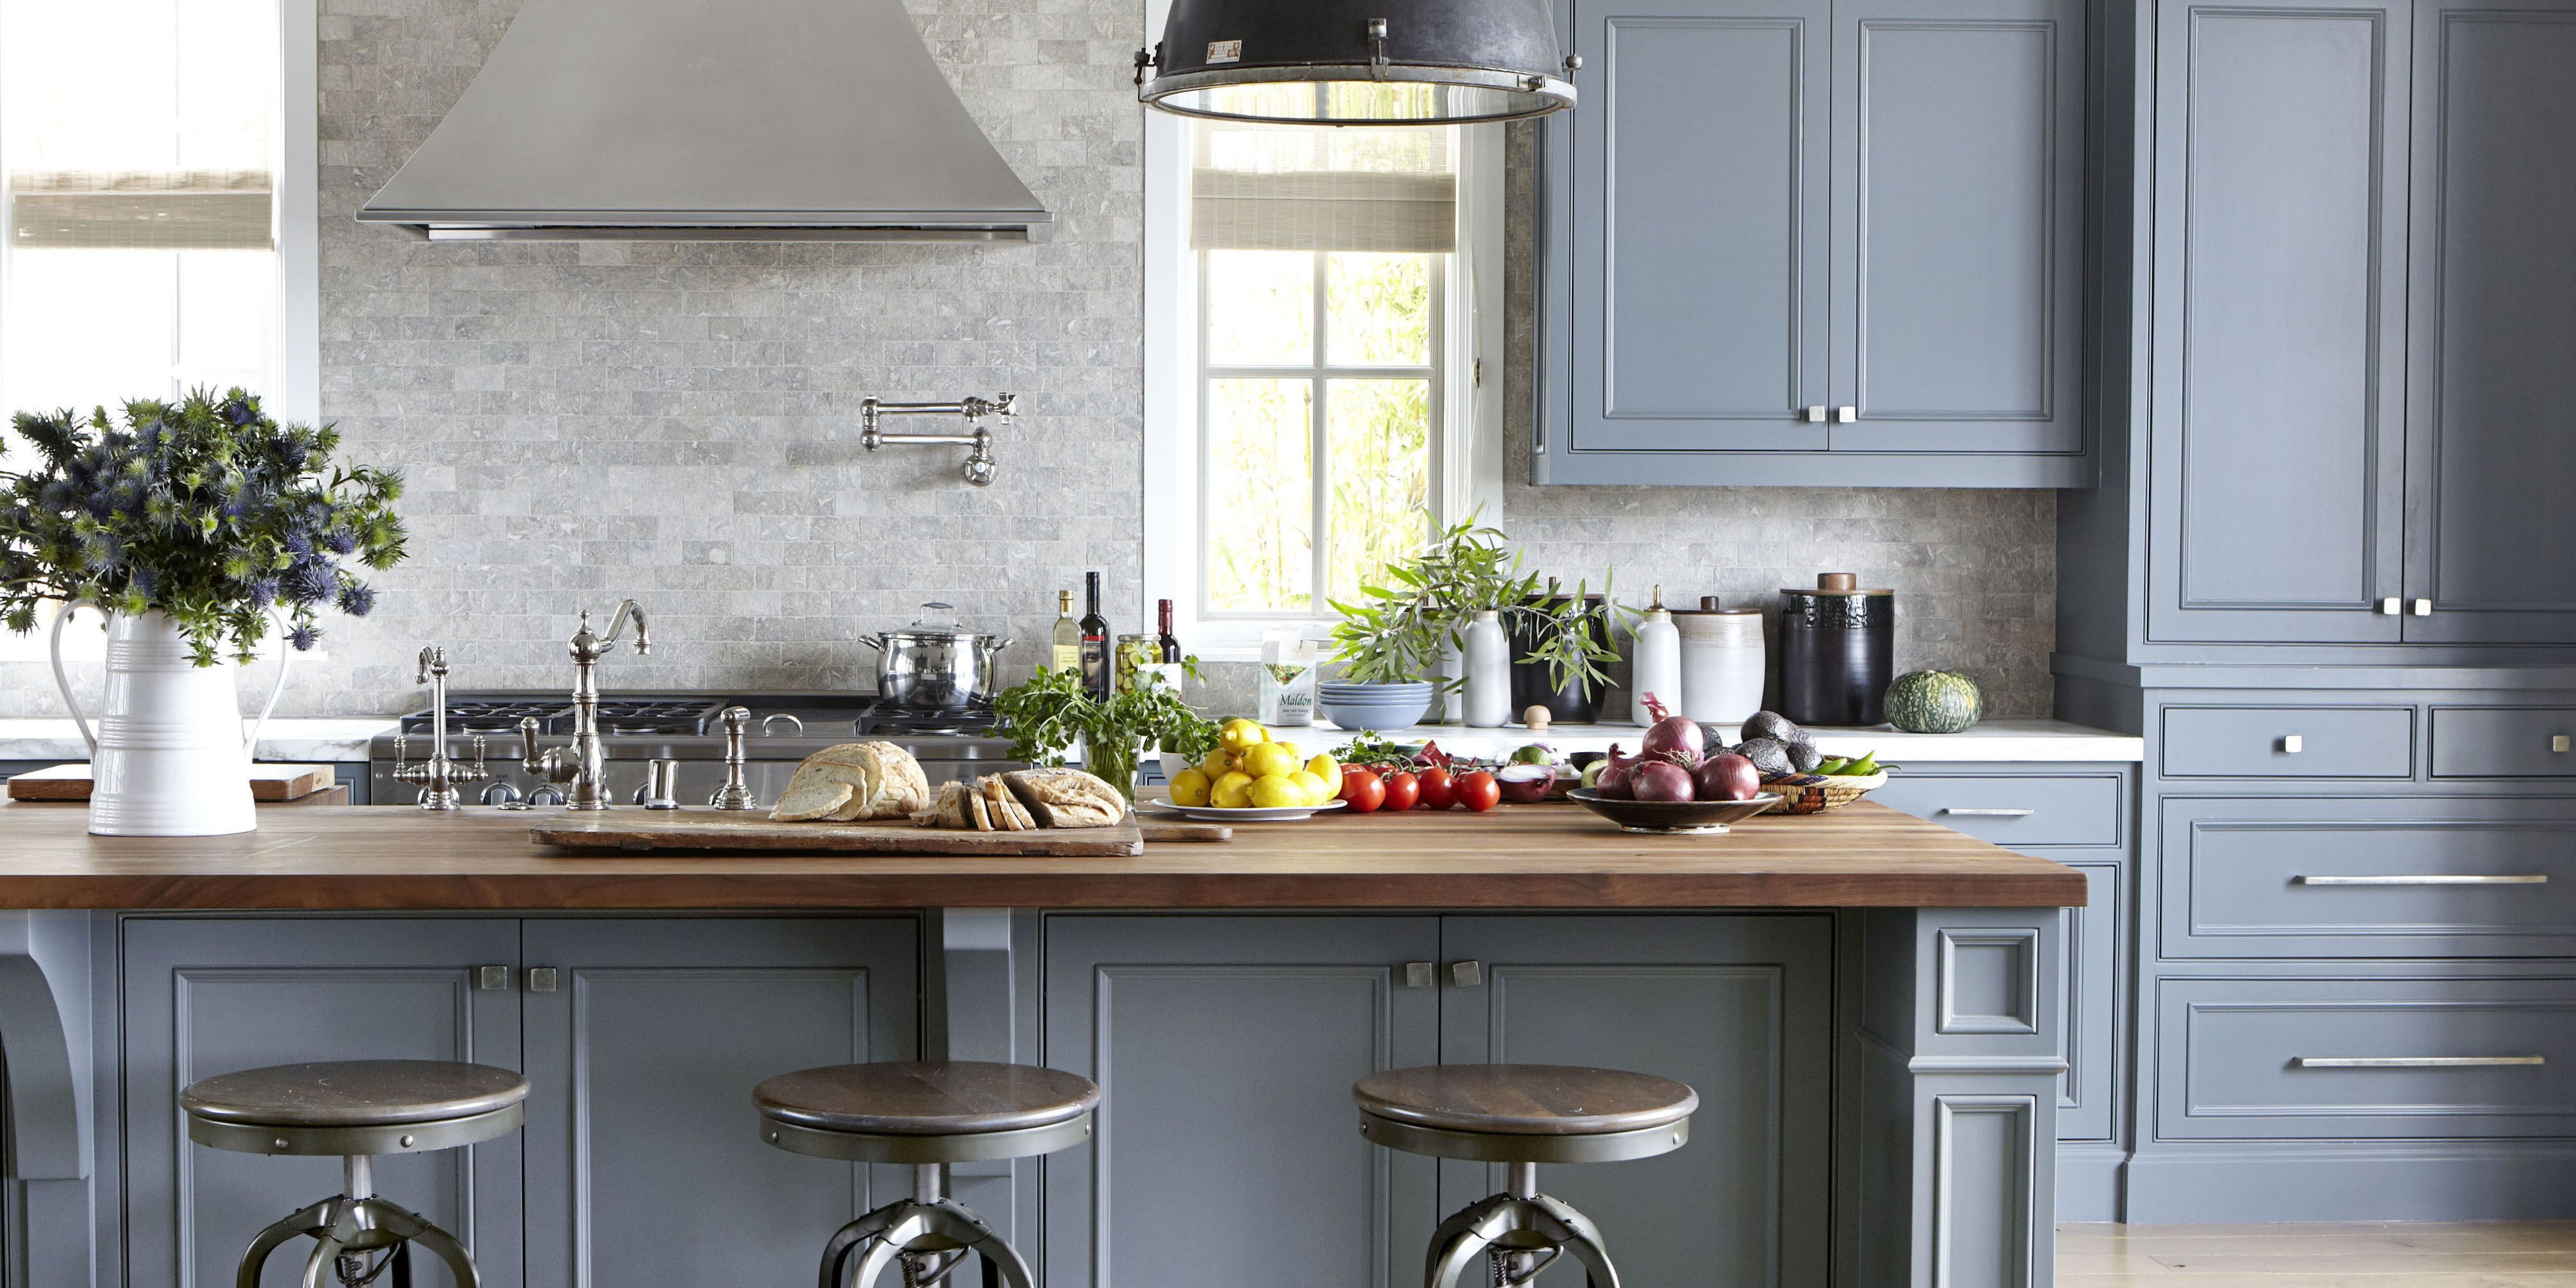 gray paint ideas for kitchen repairs hillcrestestates co uk u2022 rh repairs hillcrestestates co uk